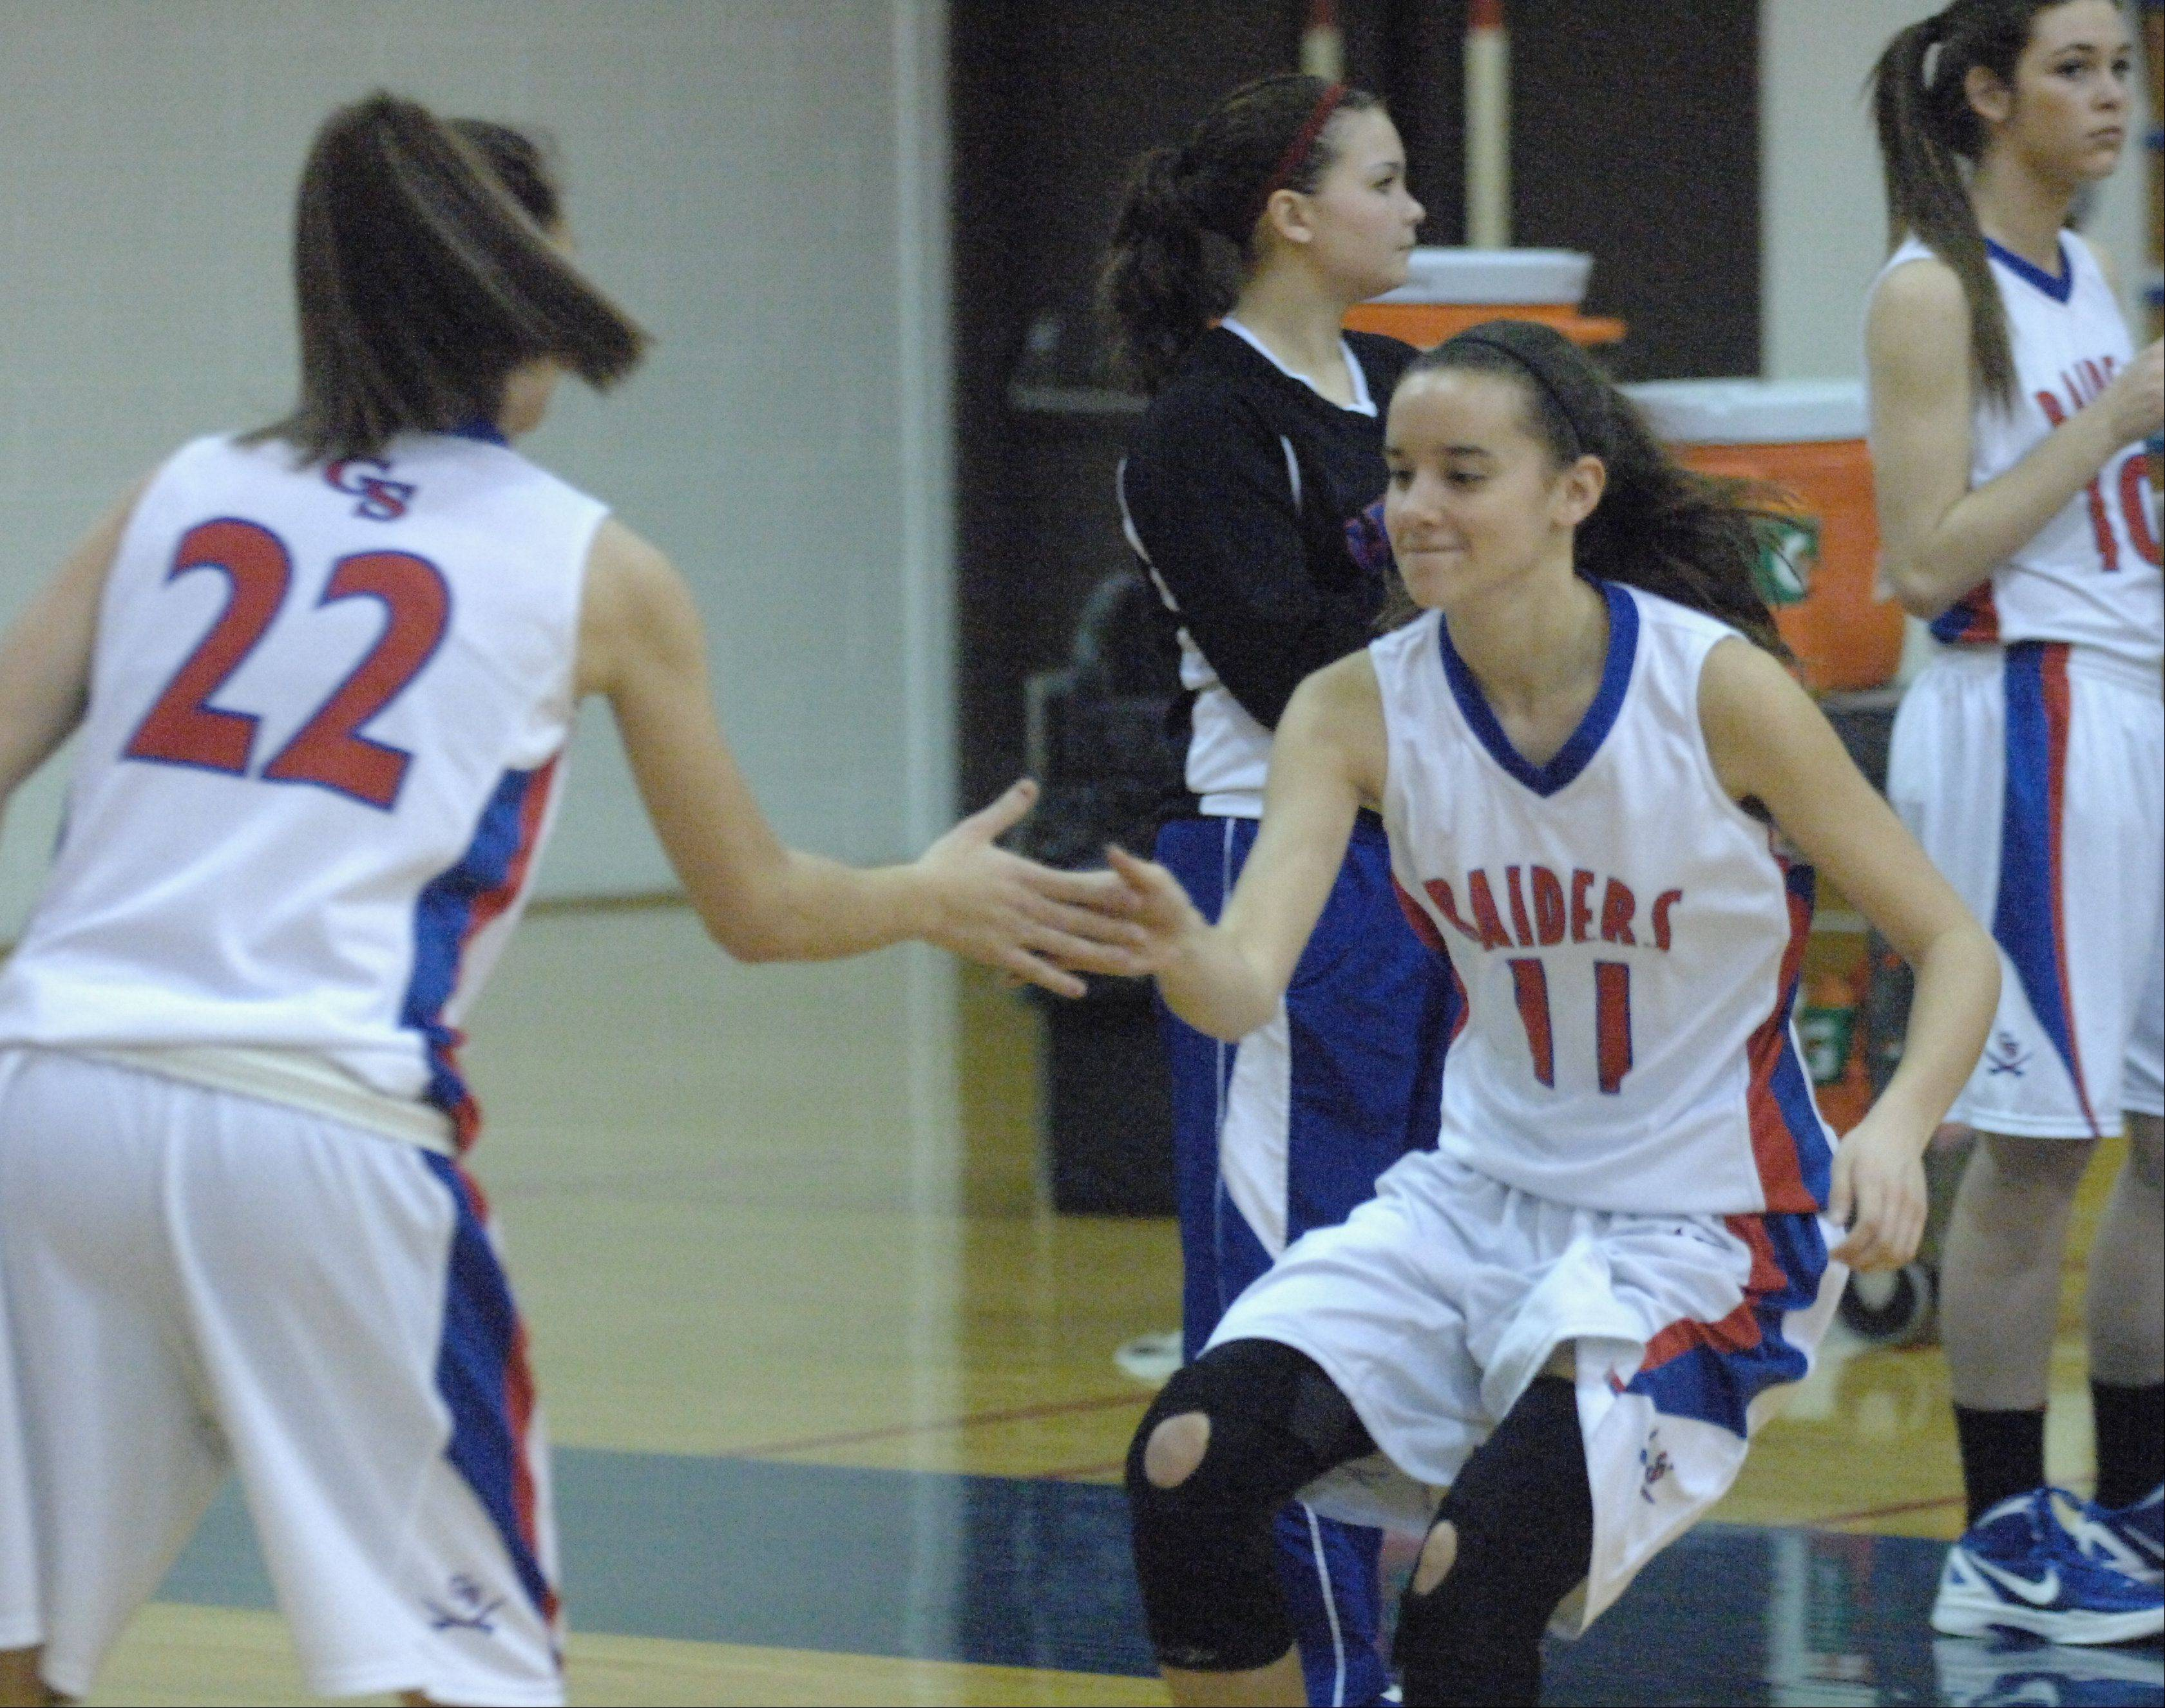 Images: Glenbard South vs. Downers Grove South, girls basketball